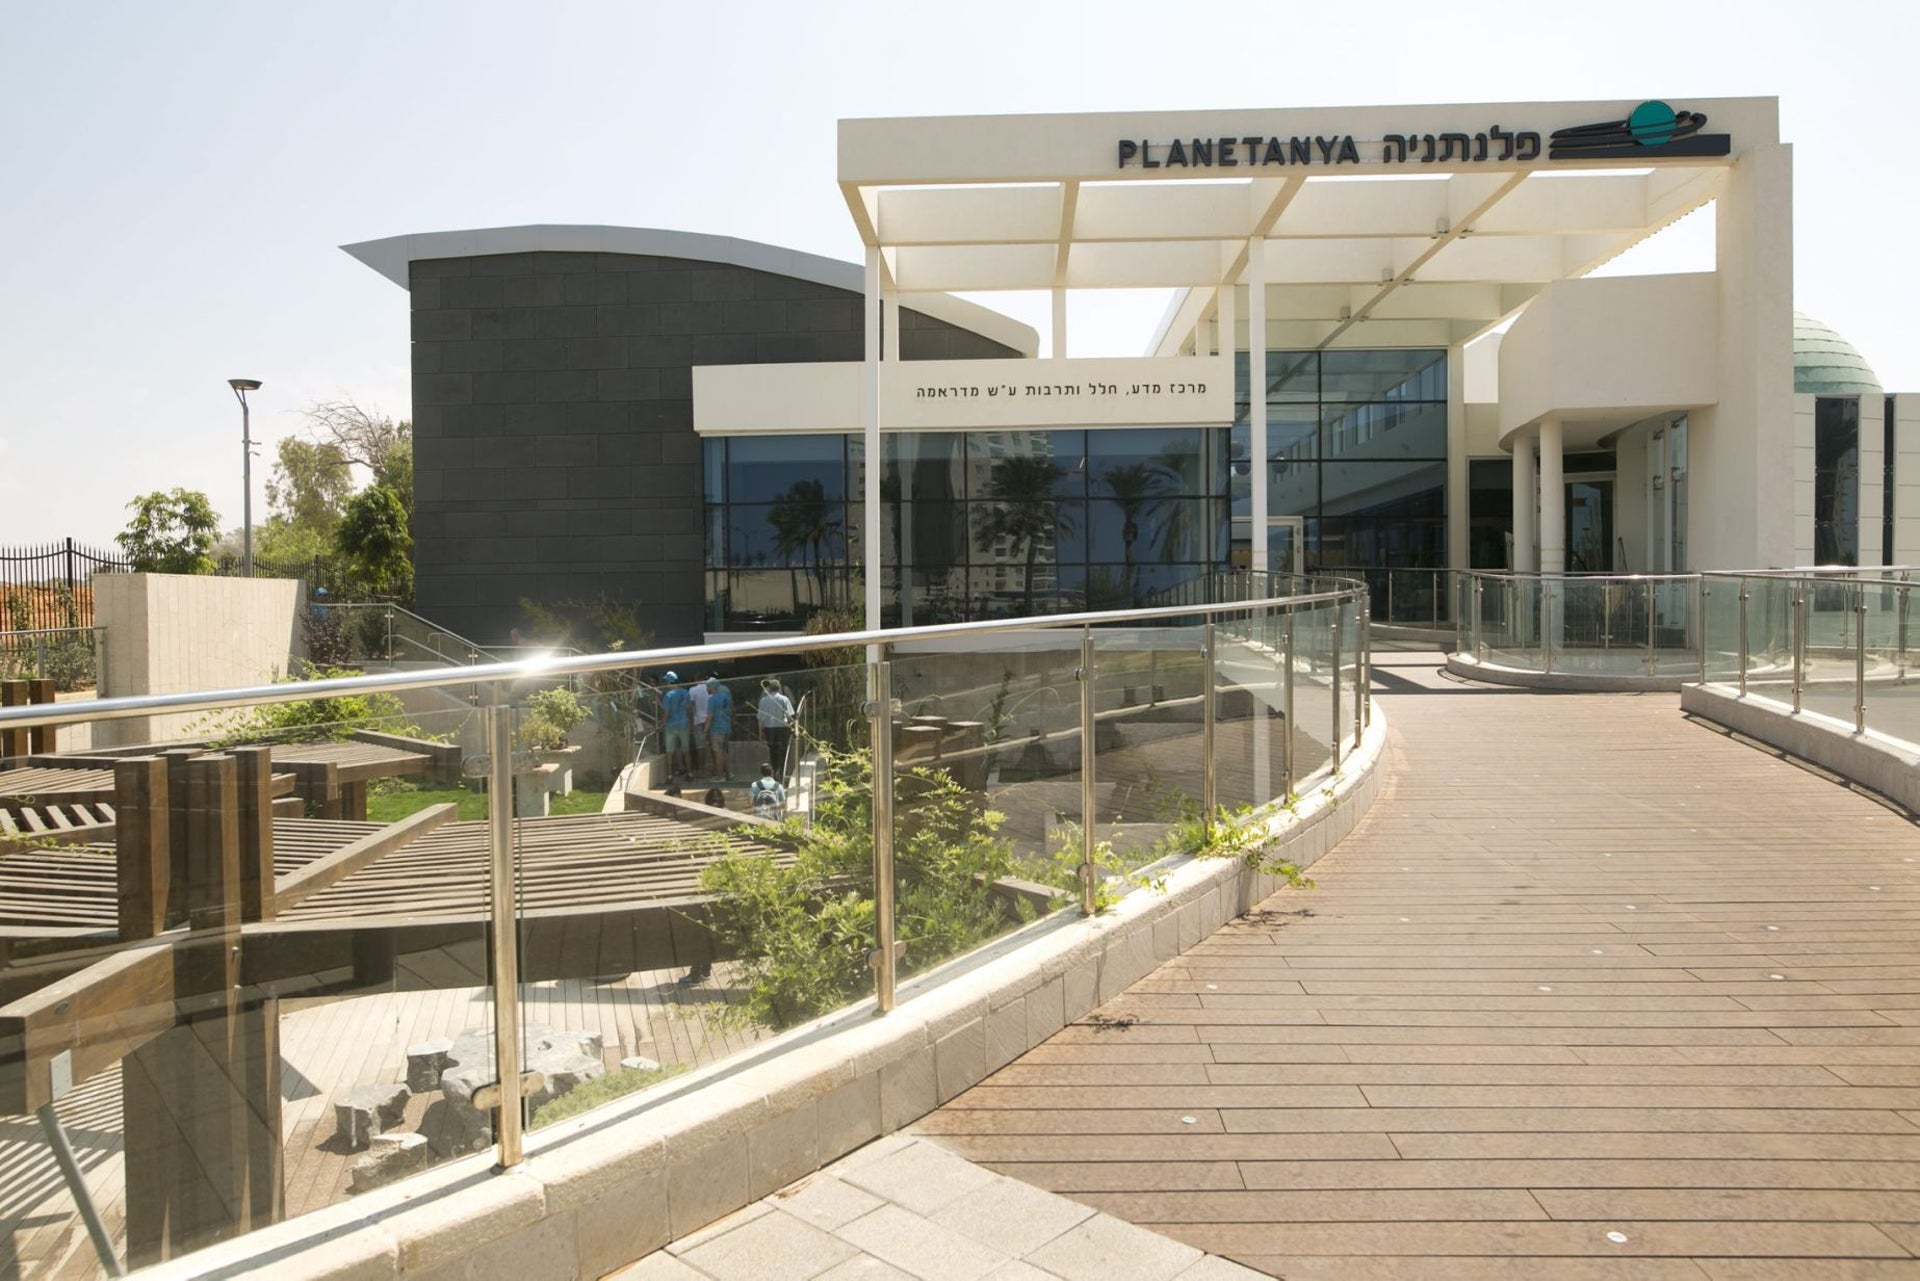 Planetanya. Some residents are fighting to get the center opened on Shabbat.